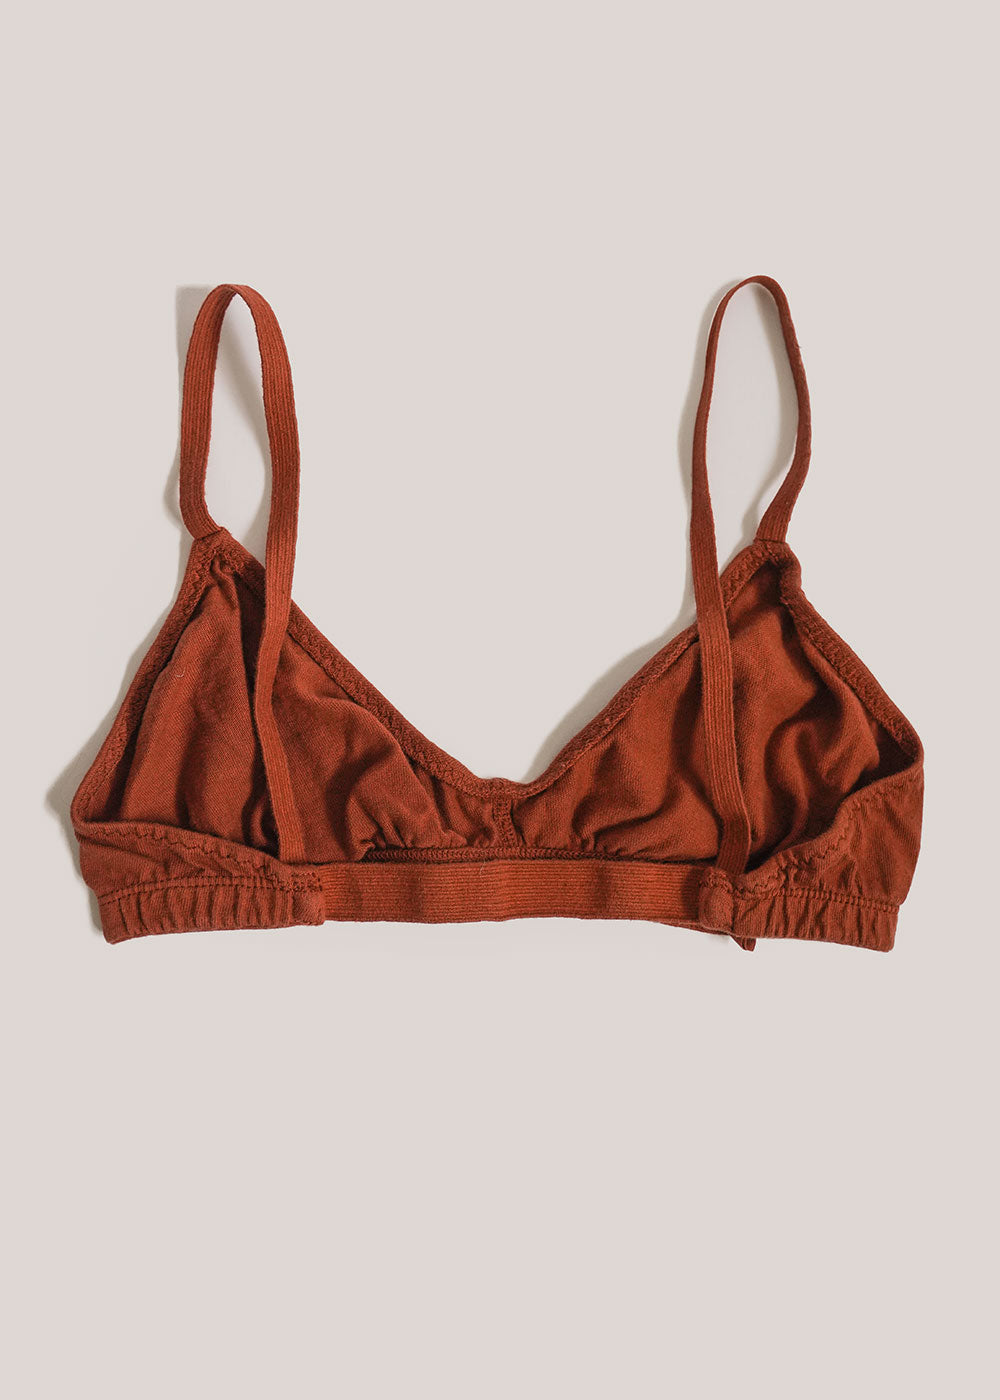 Pansy Rust Bra — Shop sustainable fashion and slow fashion at New Classics Studios